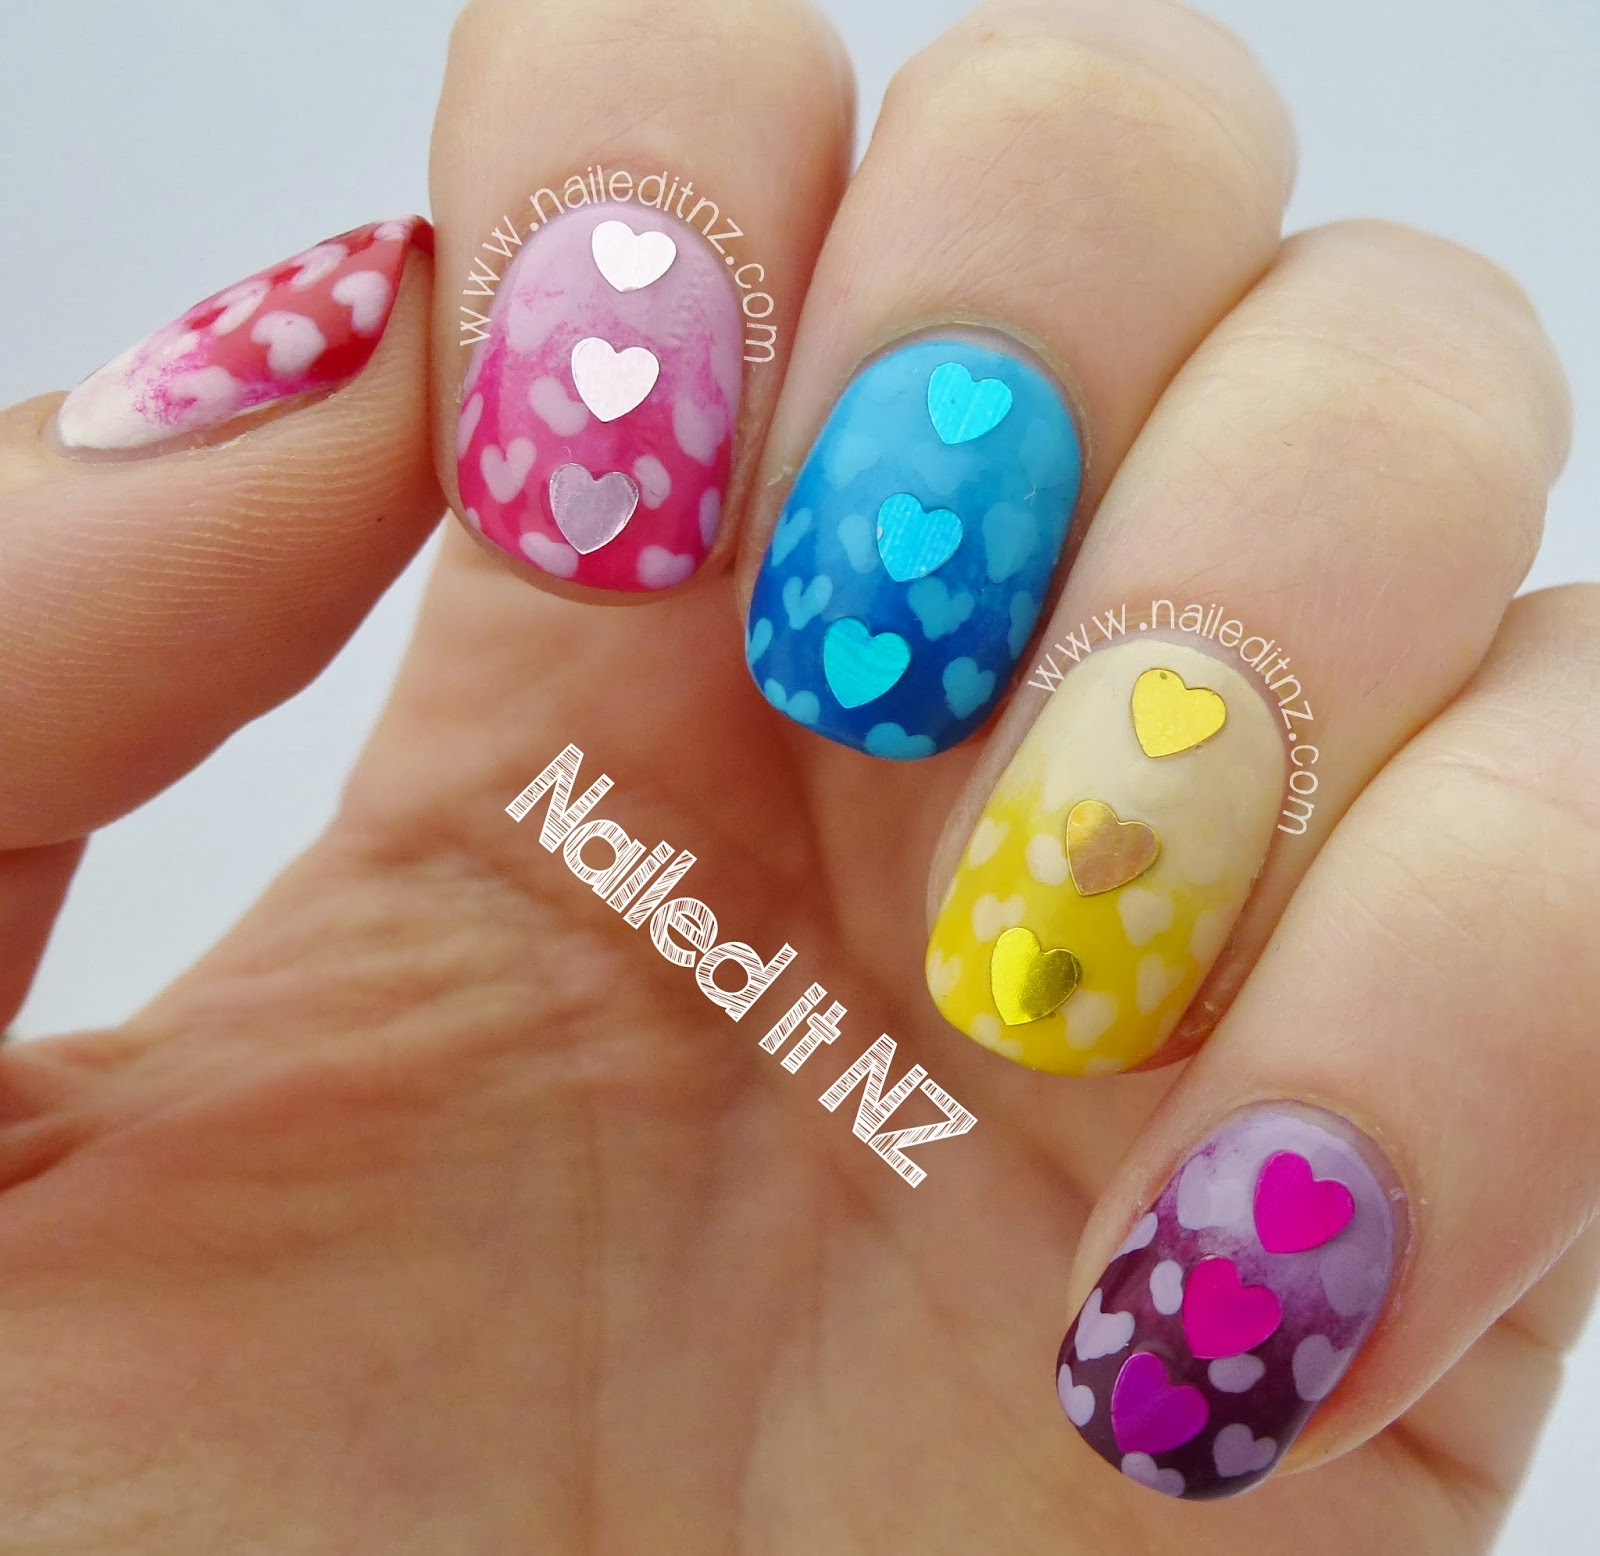 Hunger Hearts - Effie Trinket Nail Art!